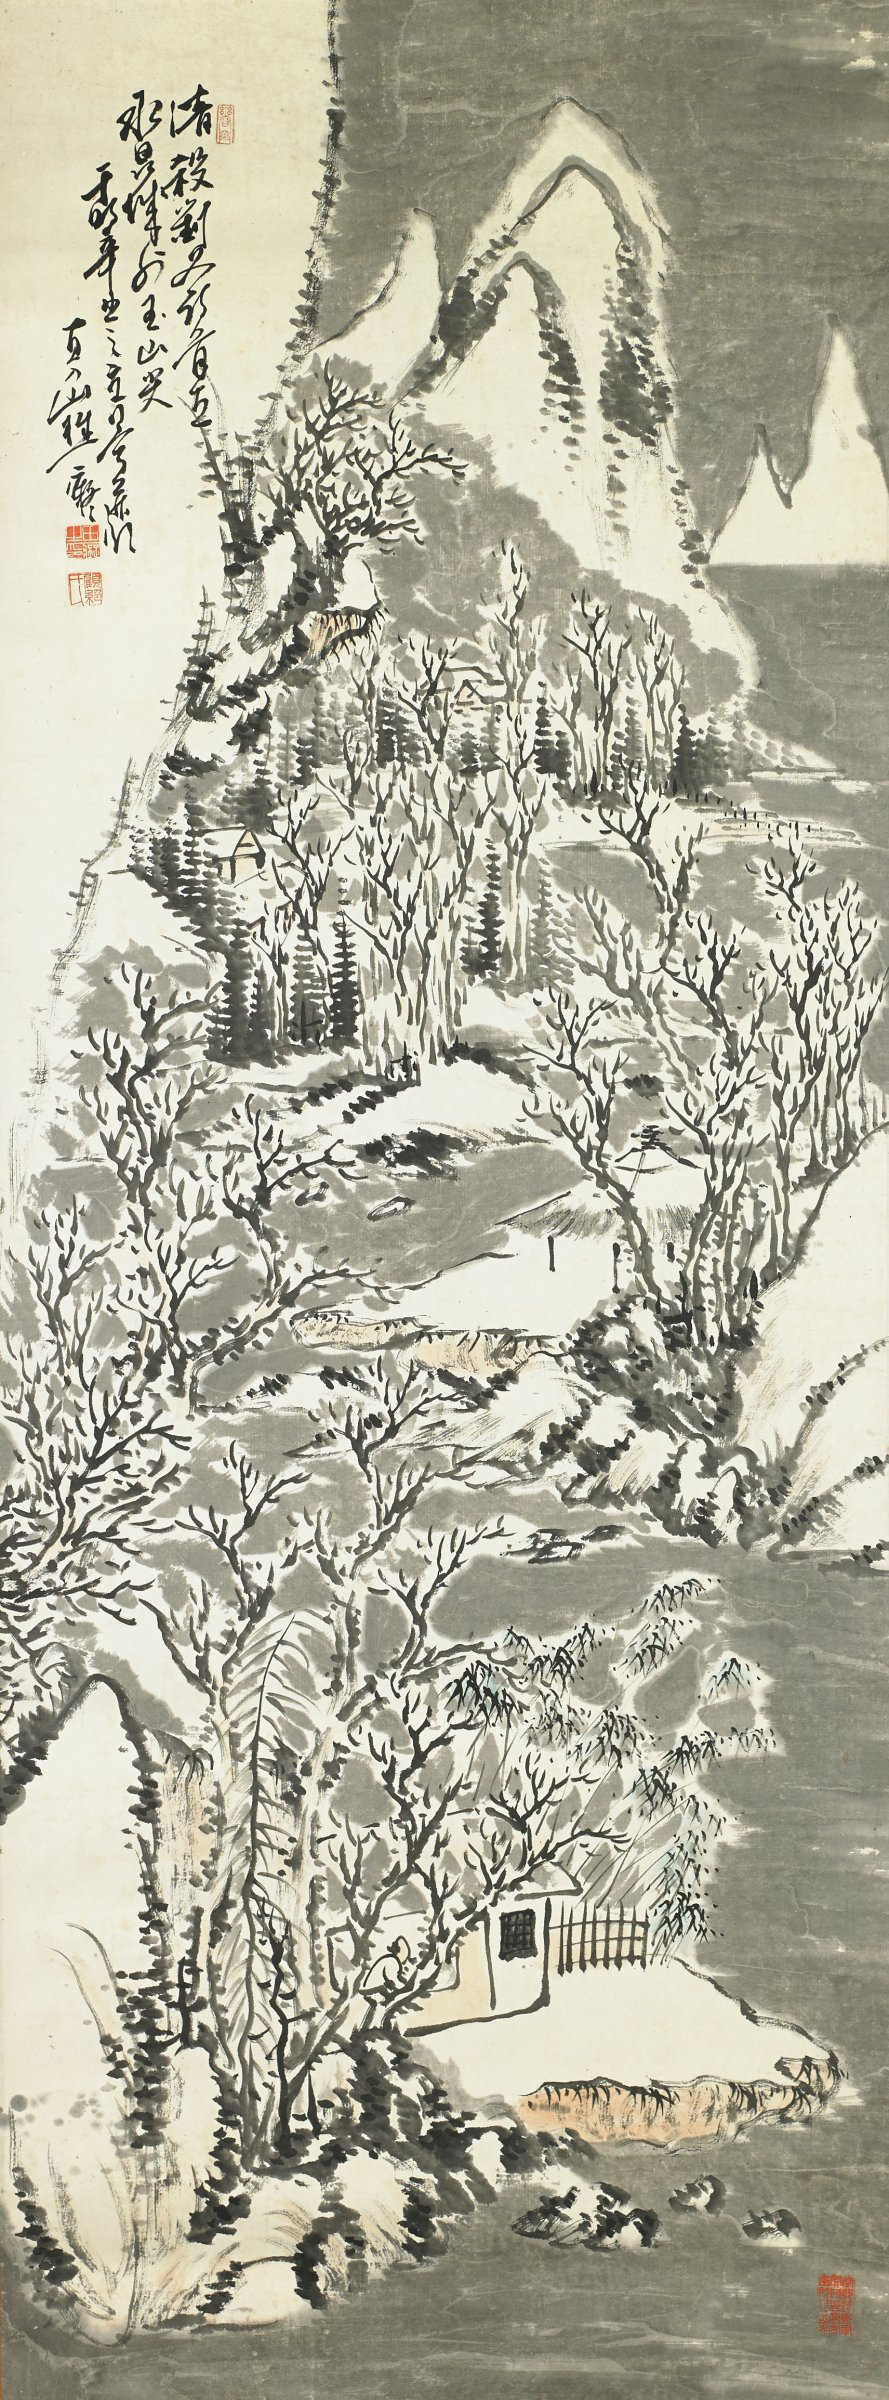 Snowy Landscape, Chokunyu Tanomura, ink and color on paper